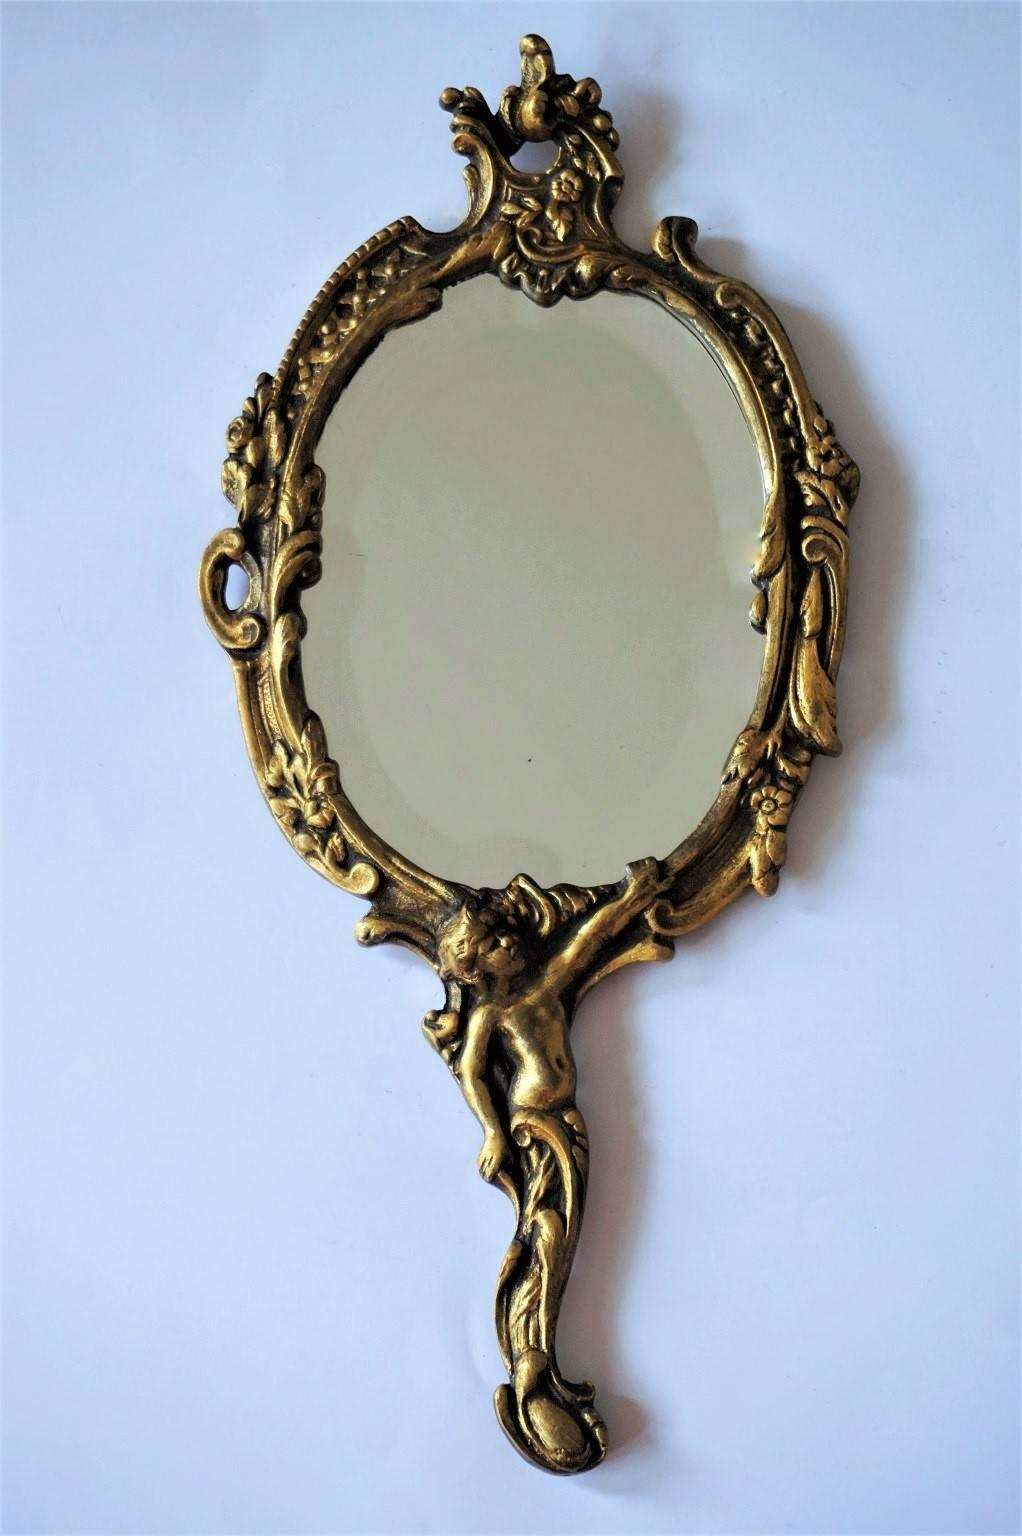 Ornate hand mirror Victorian Style French Art Nouveau Gilt Bronze And Faceted Hand Mirror Richly Ornate With Florals And With Figurine 1stdibs 19th Century French Art Nouveau Gilt Bronze Hand Mirror Faceted